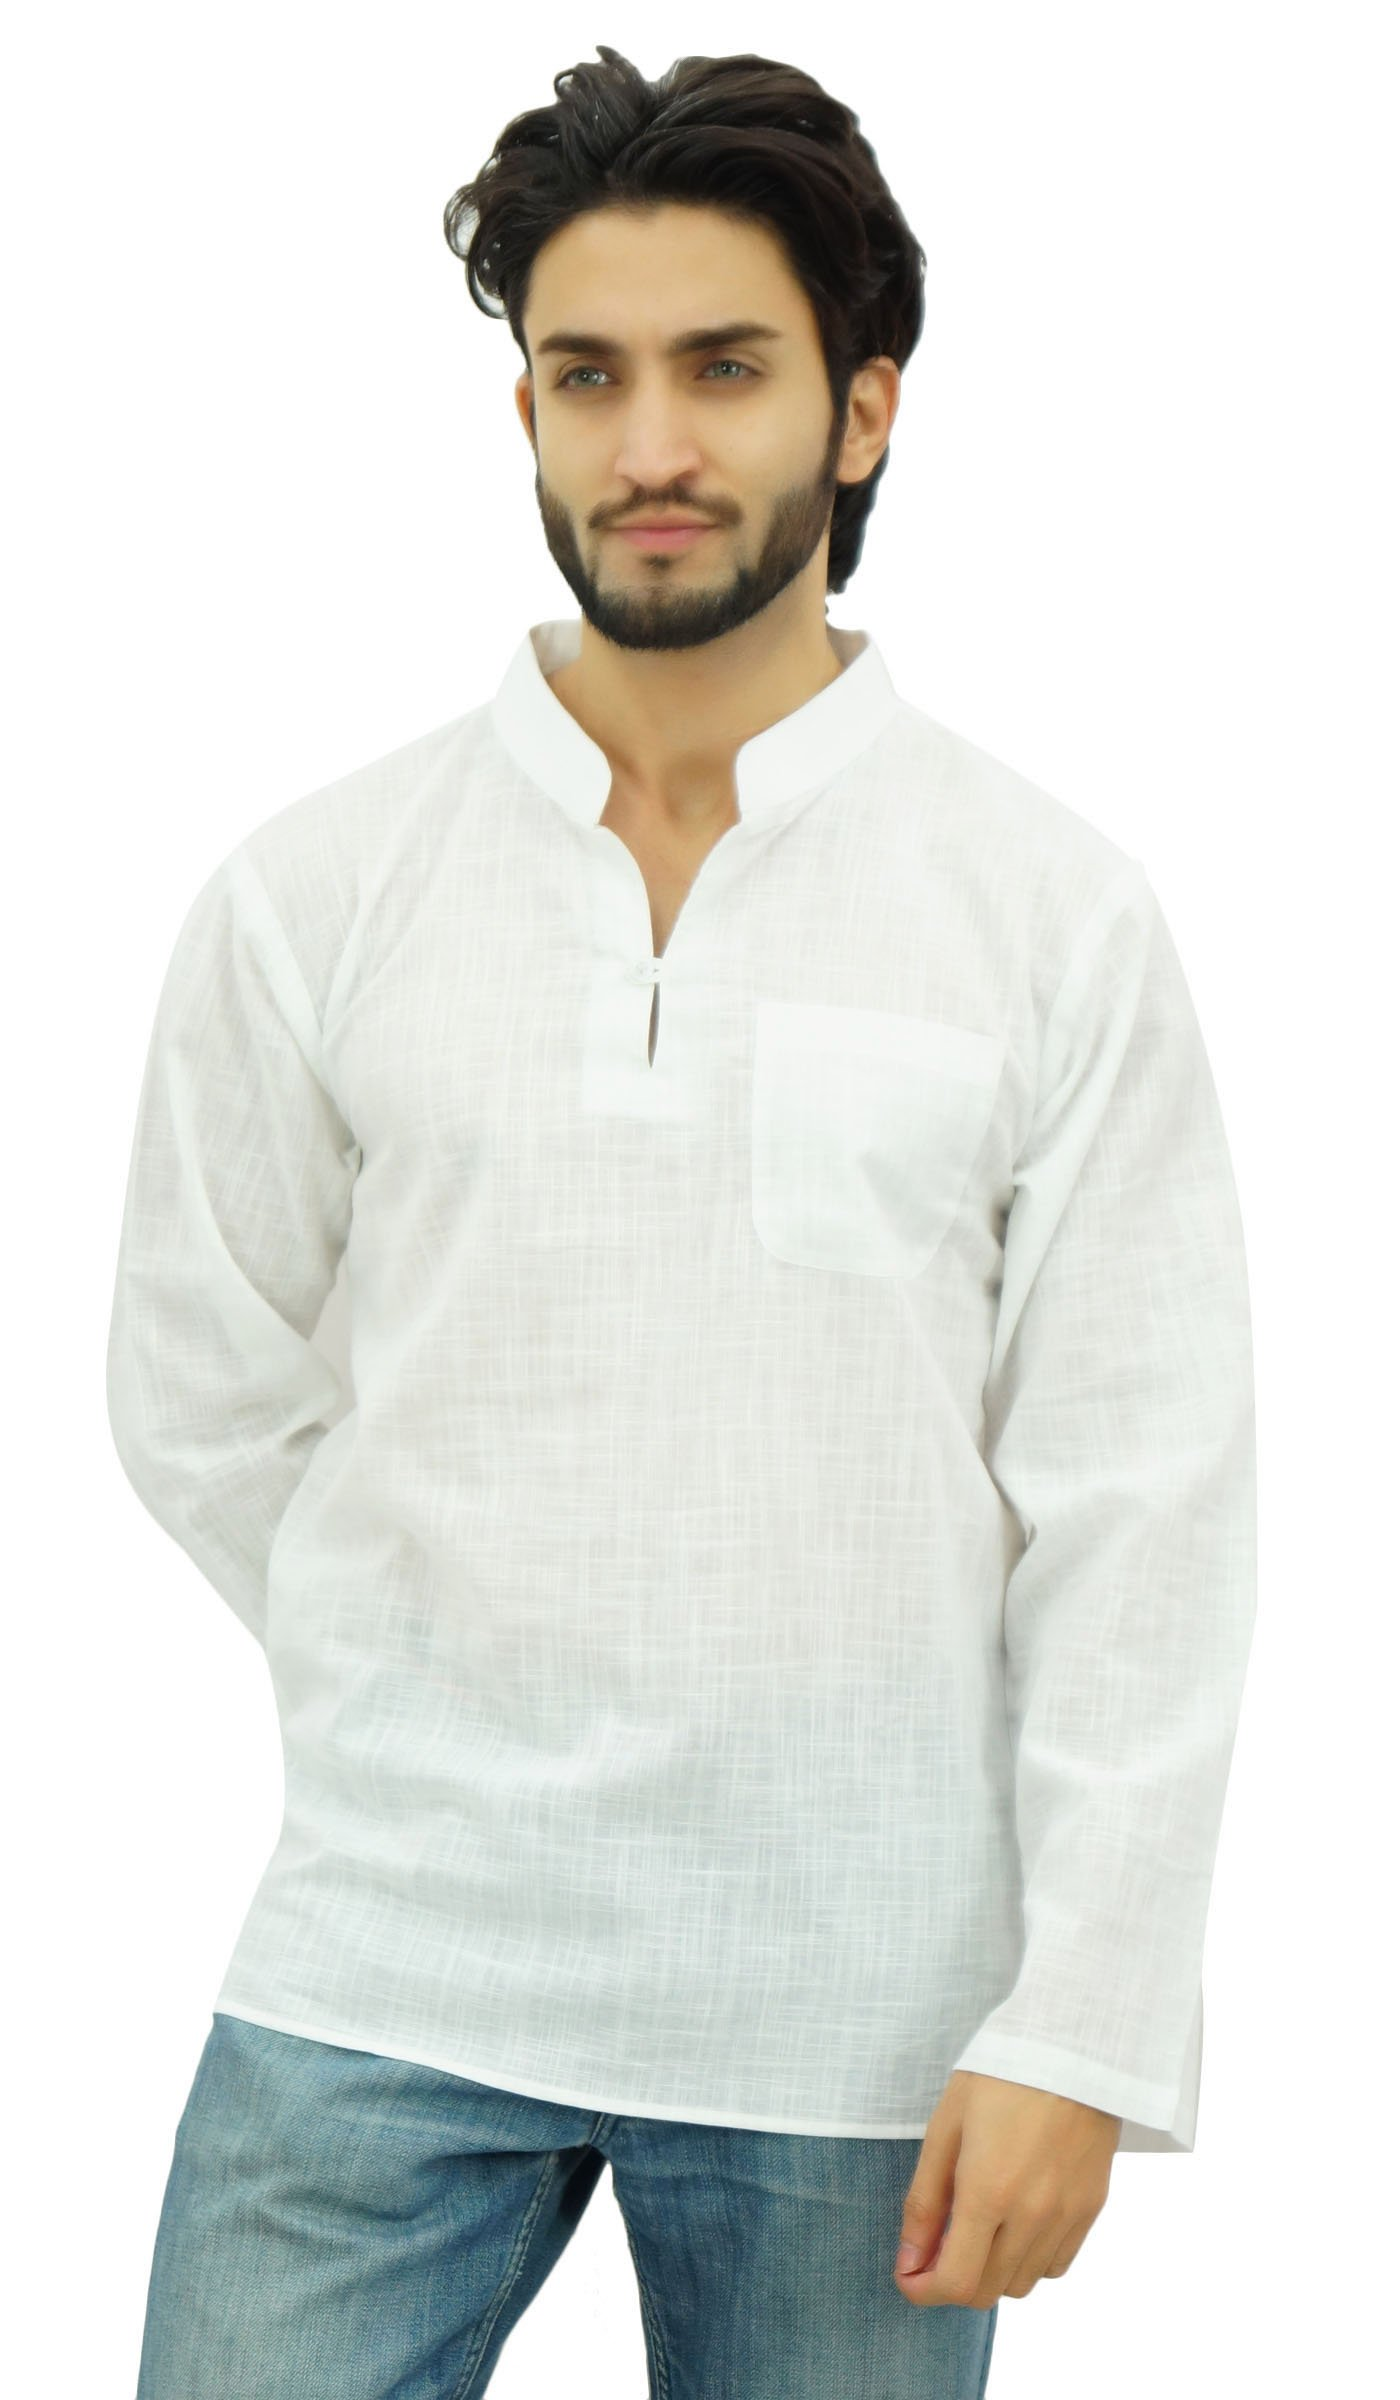 Atasi Men's Band Collar Short Kurta White Cotton Casual Tunic Shirt-Large by Atasi (Image #1)